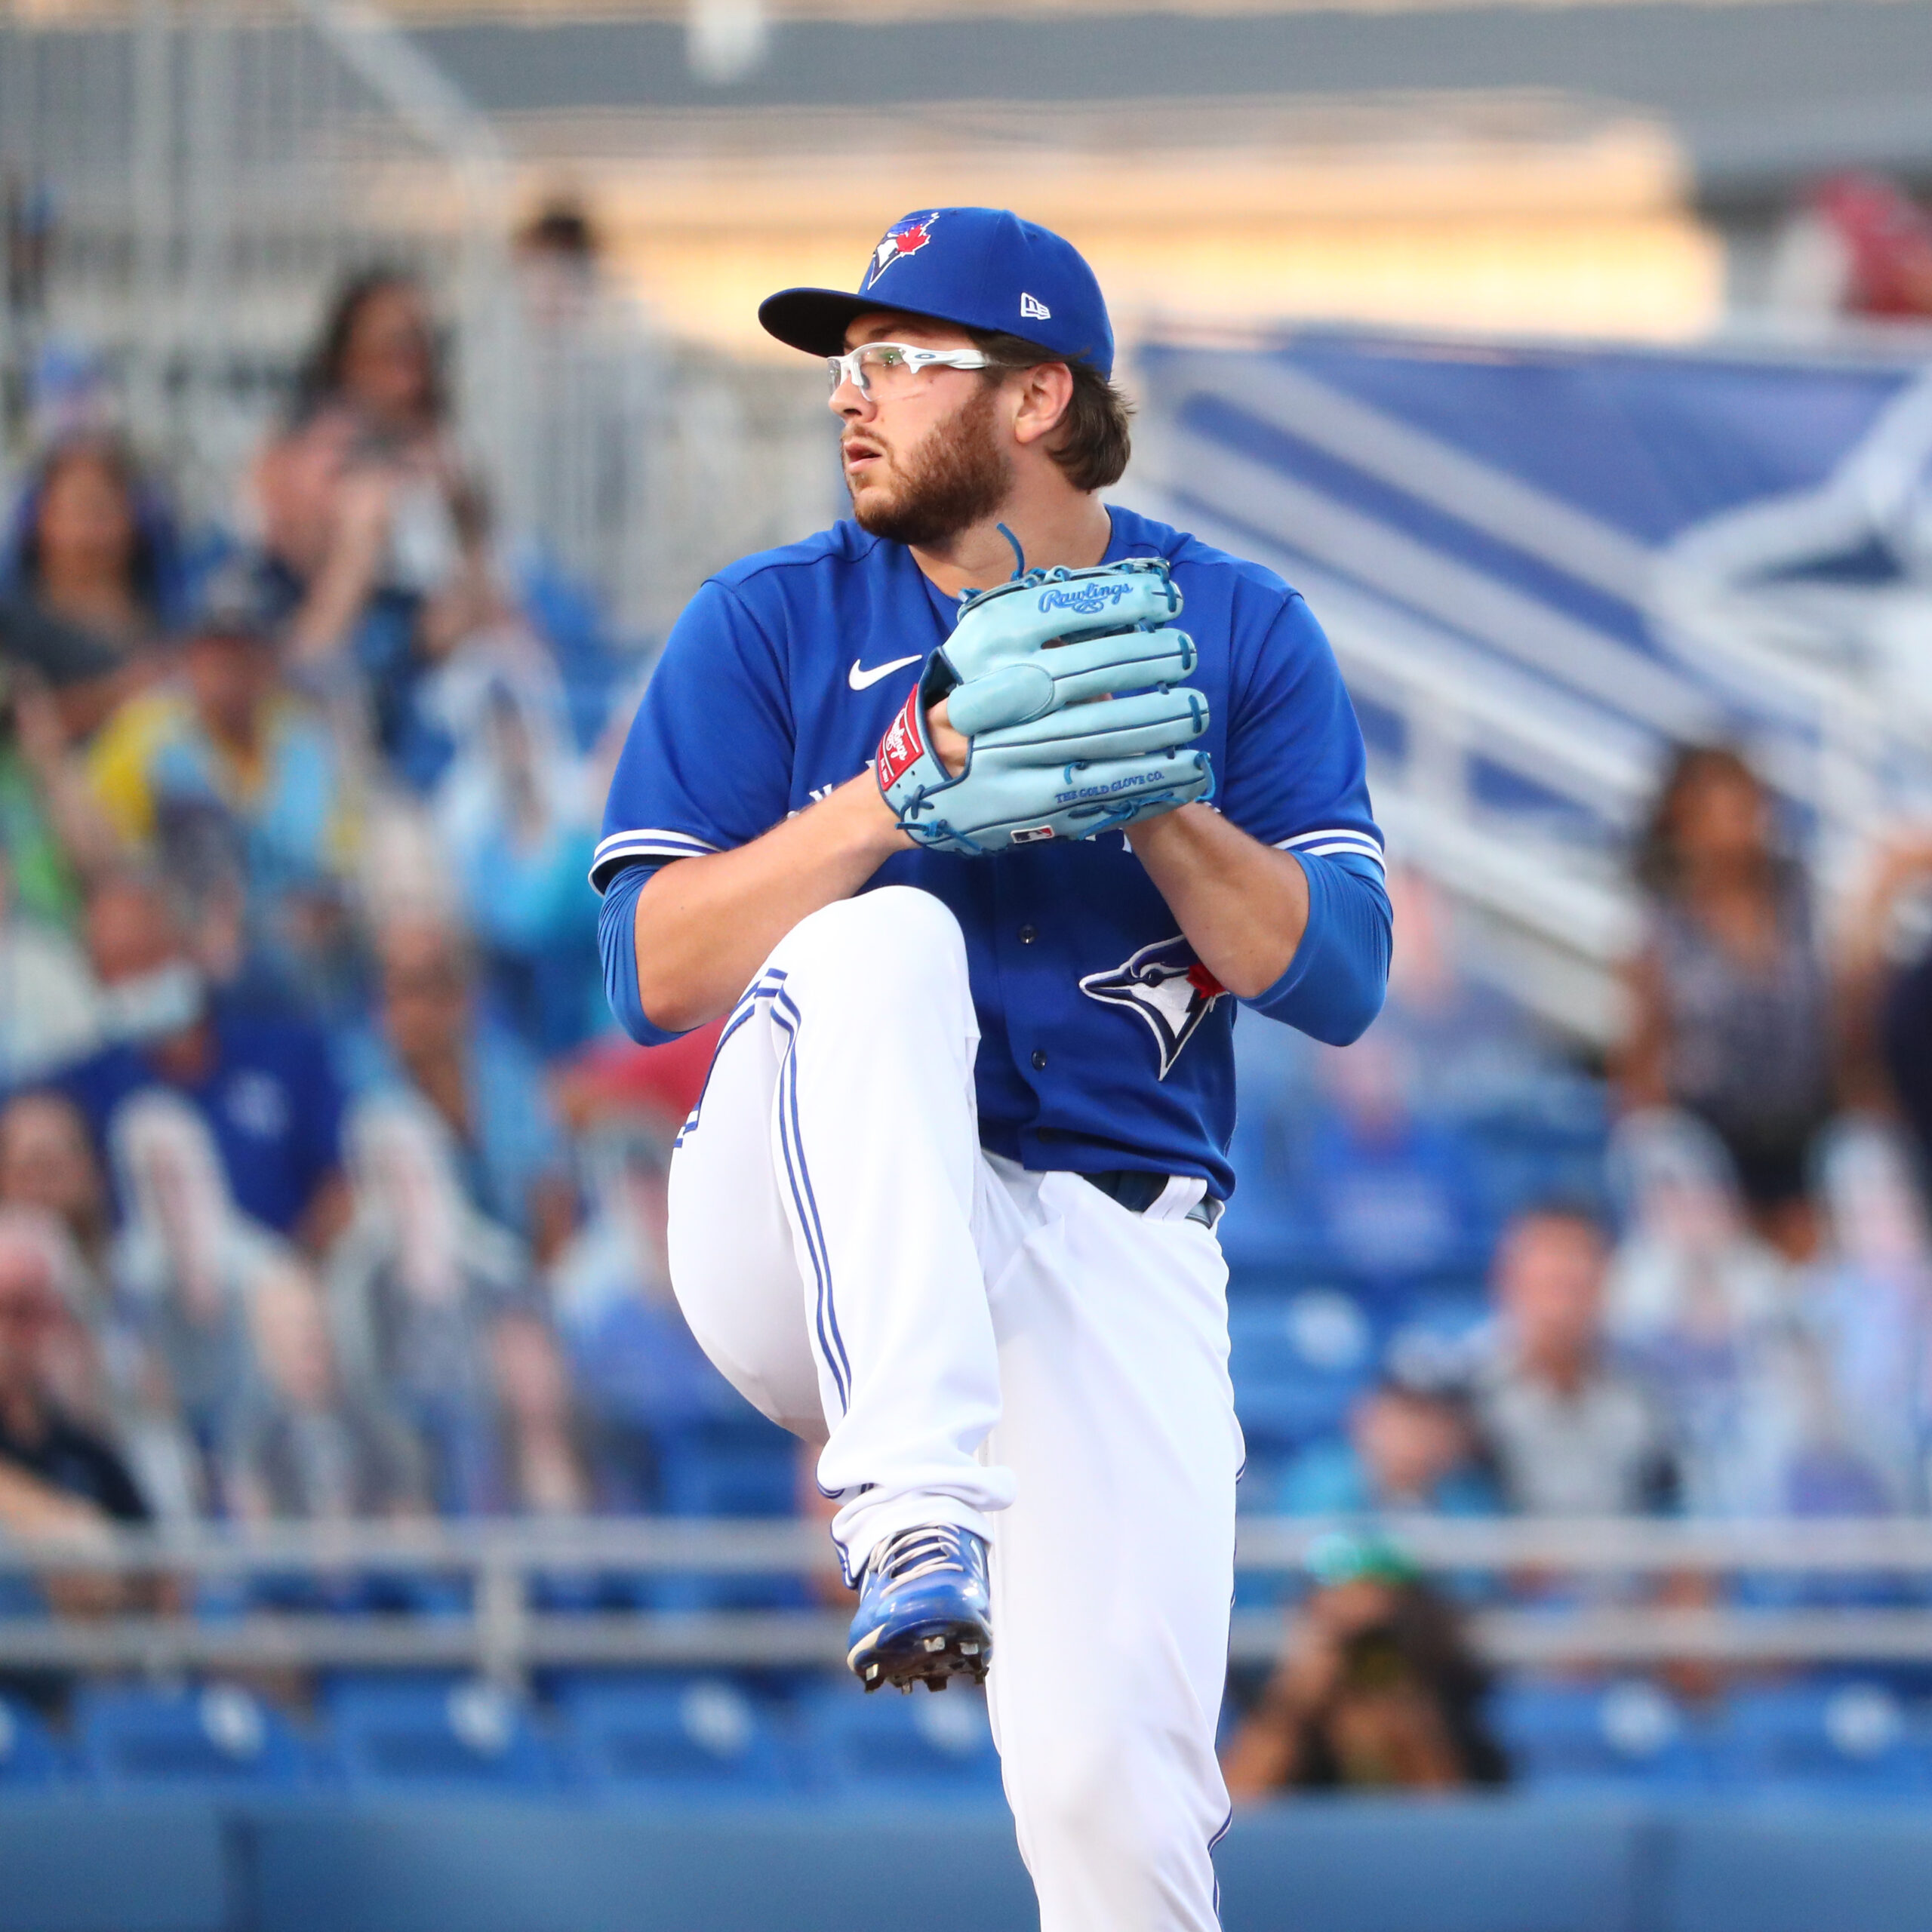 Blue Jays player Anthony Kay getting ready to throw a pitch